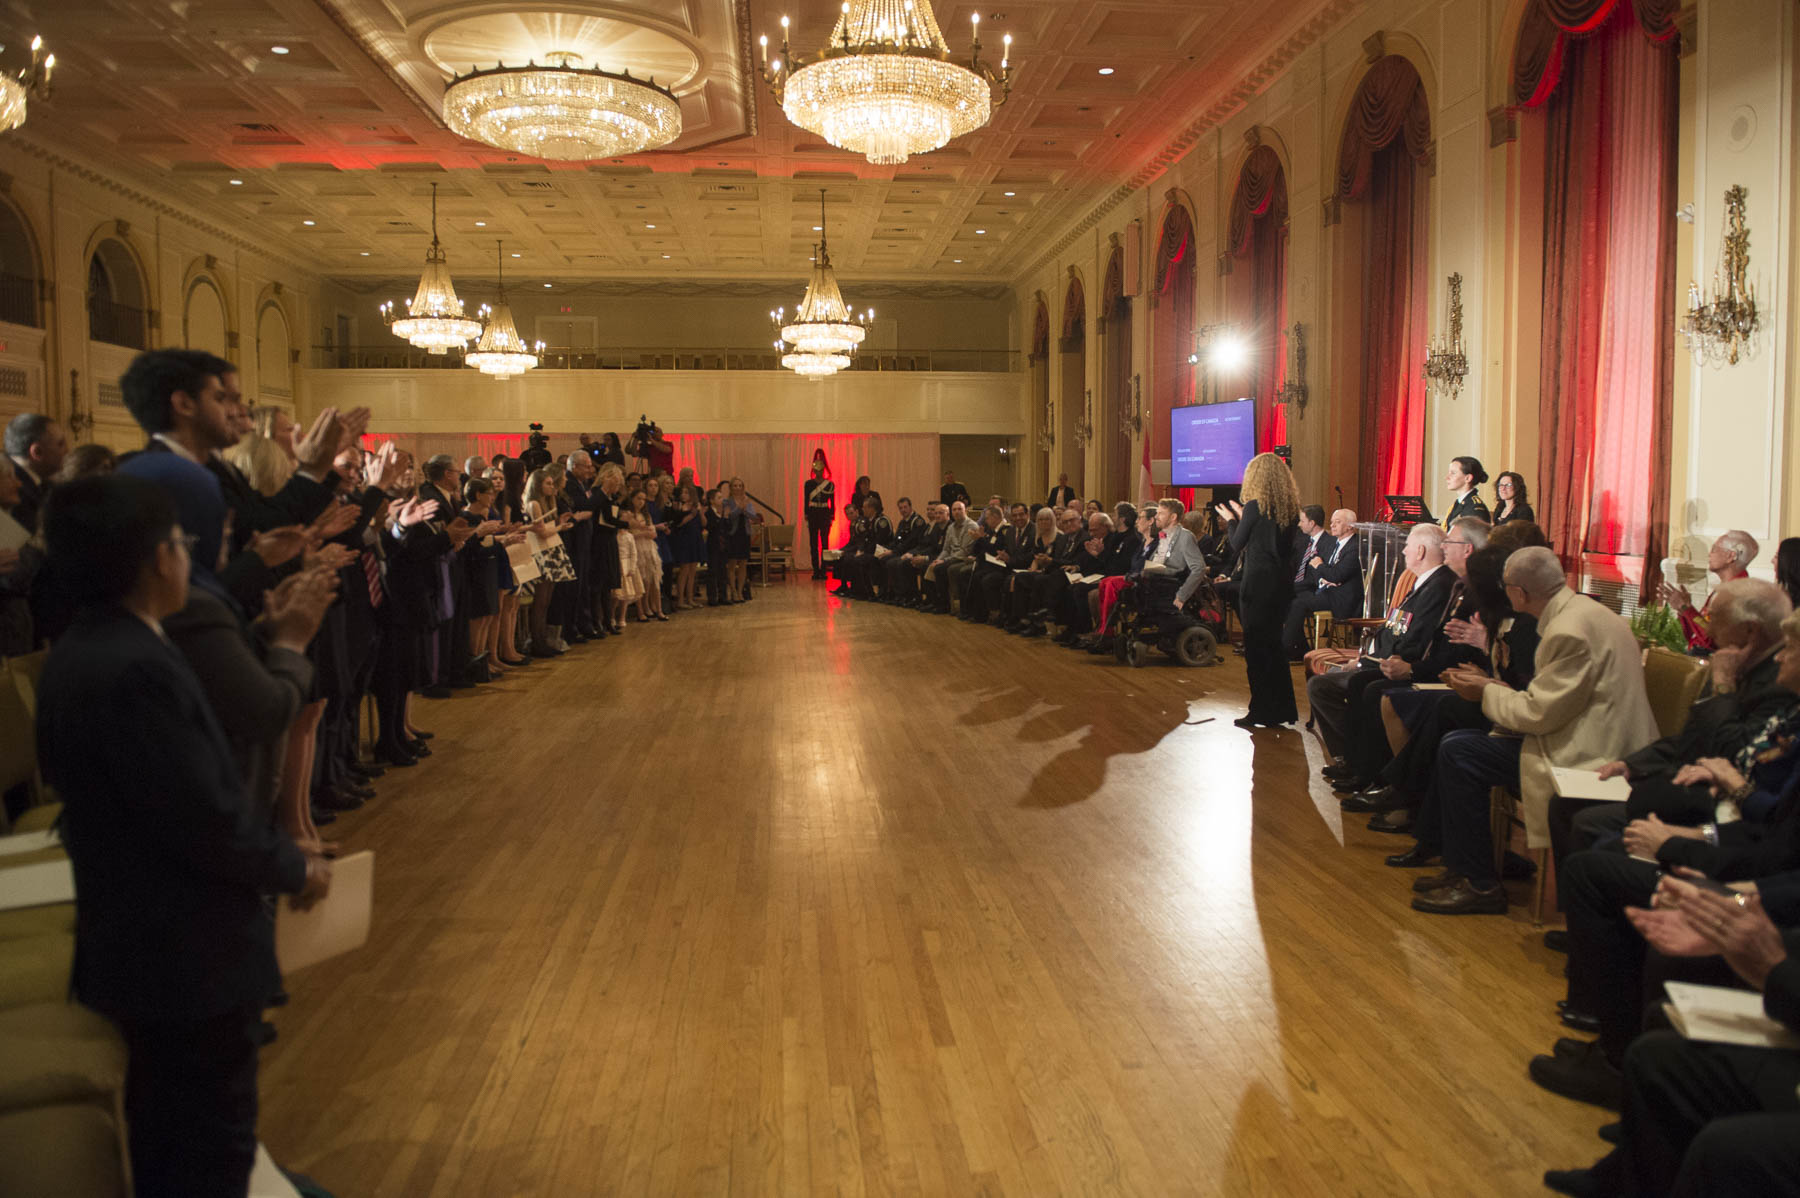 In the afternoon, the Governor General presented honours during a ceremony at the Fairmont Royal York's Concert Hall. Close to 60 remarkable Canadians were recognized with the Order of Canada, Decorations for Bravery, Meritorious Service Decorations, or the Sovereign's Medal for Volunteers.